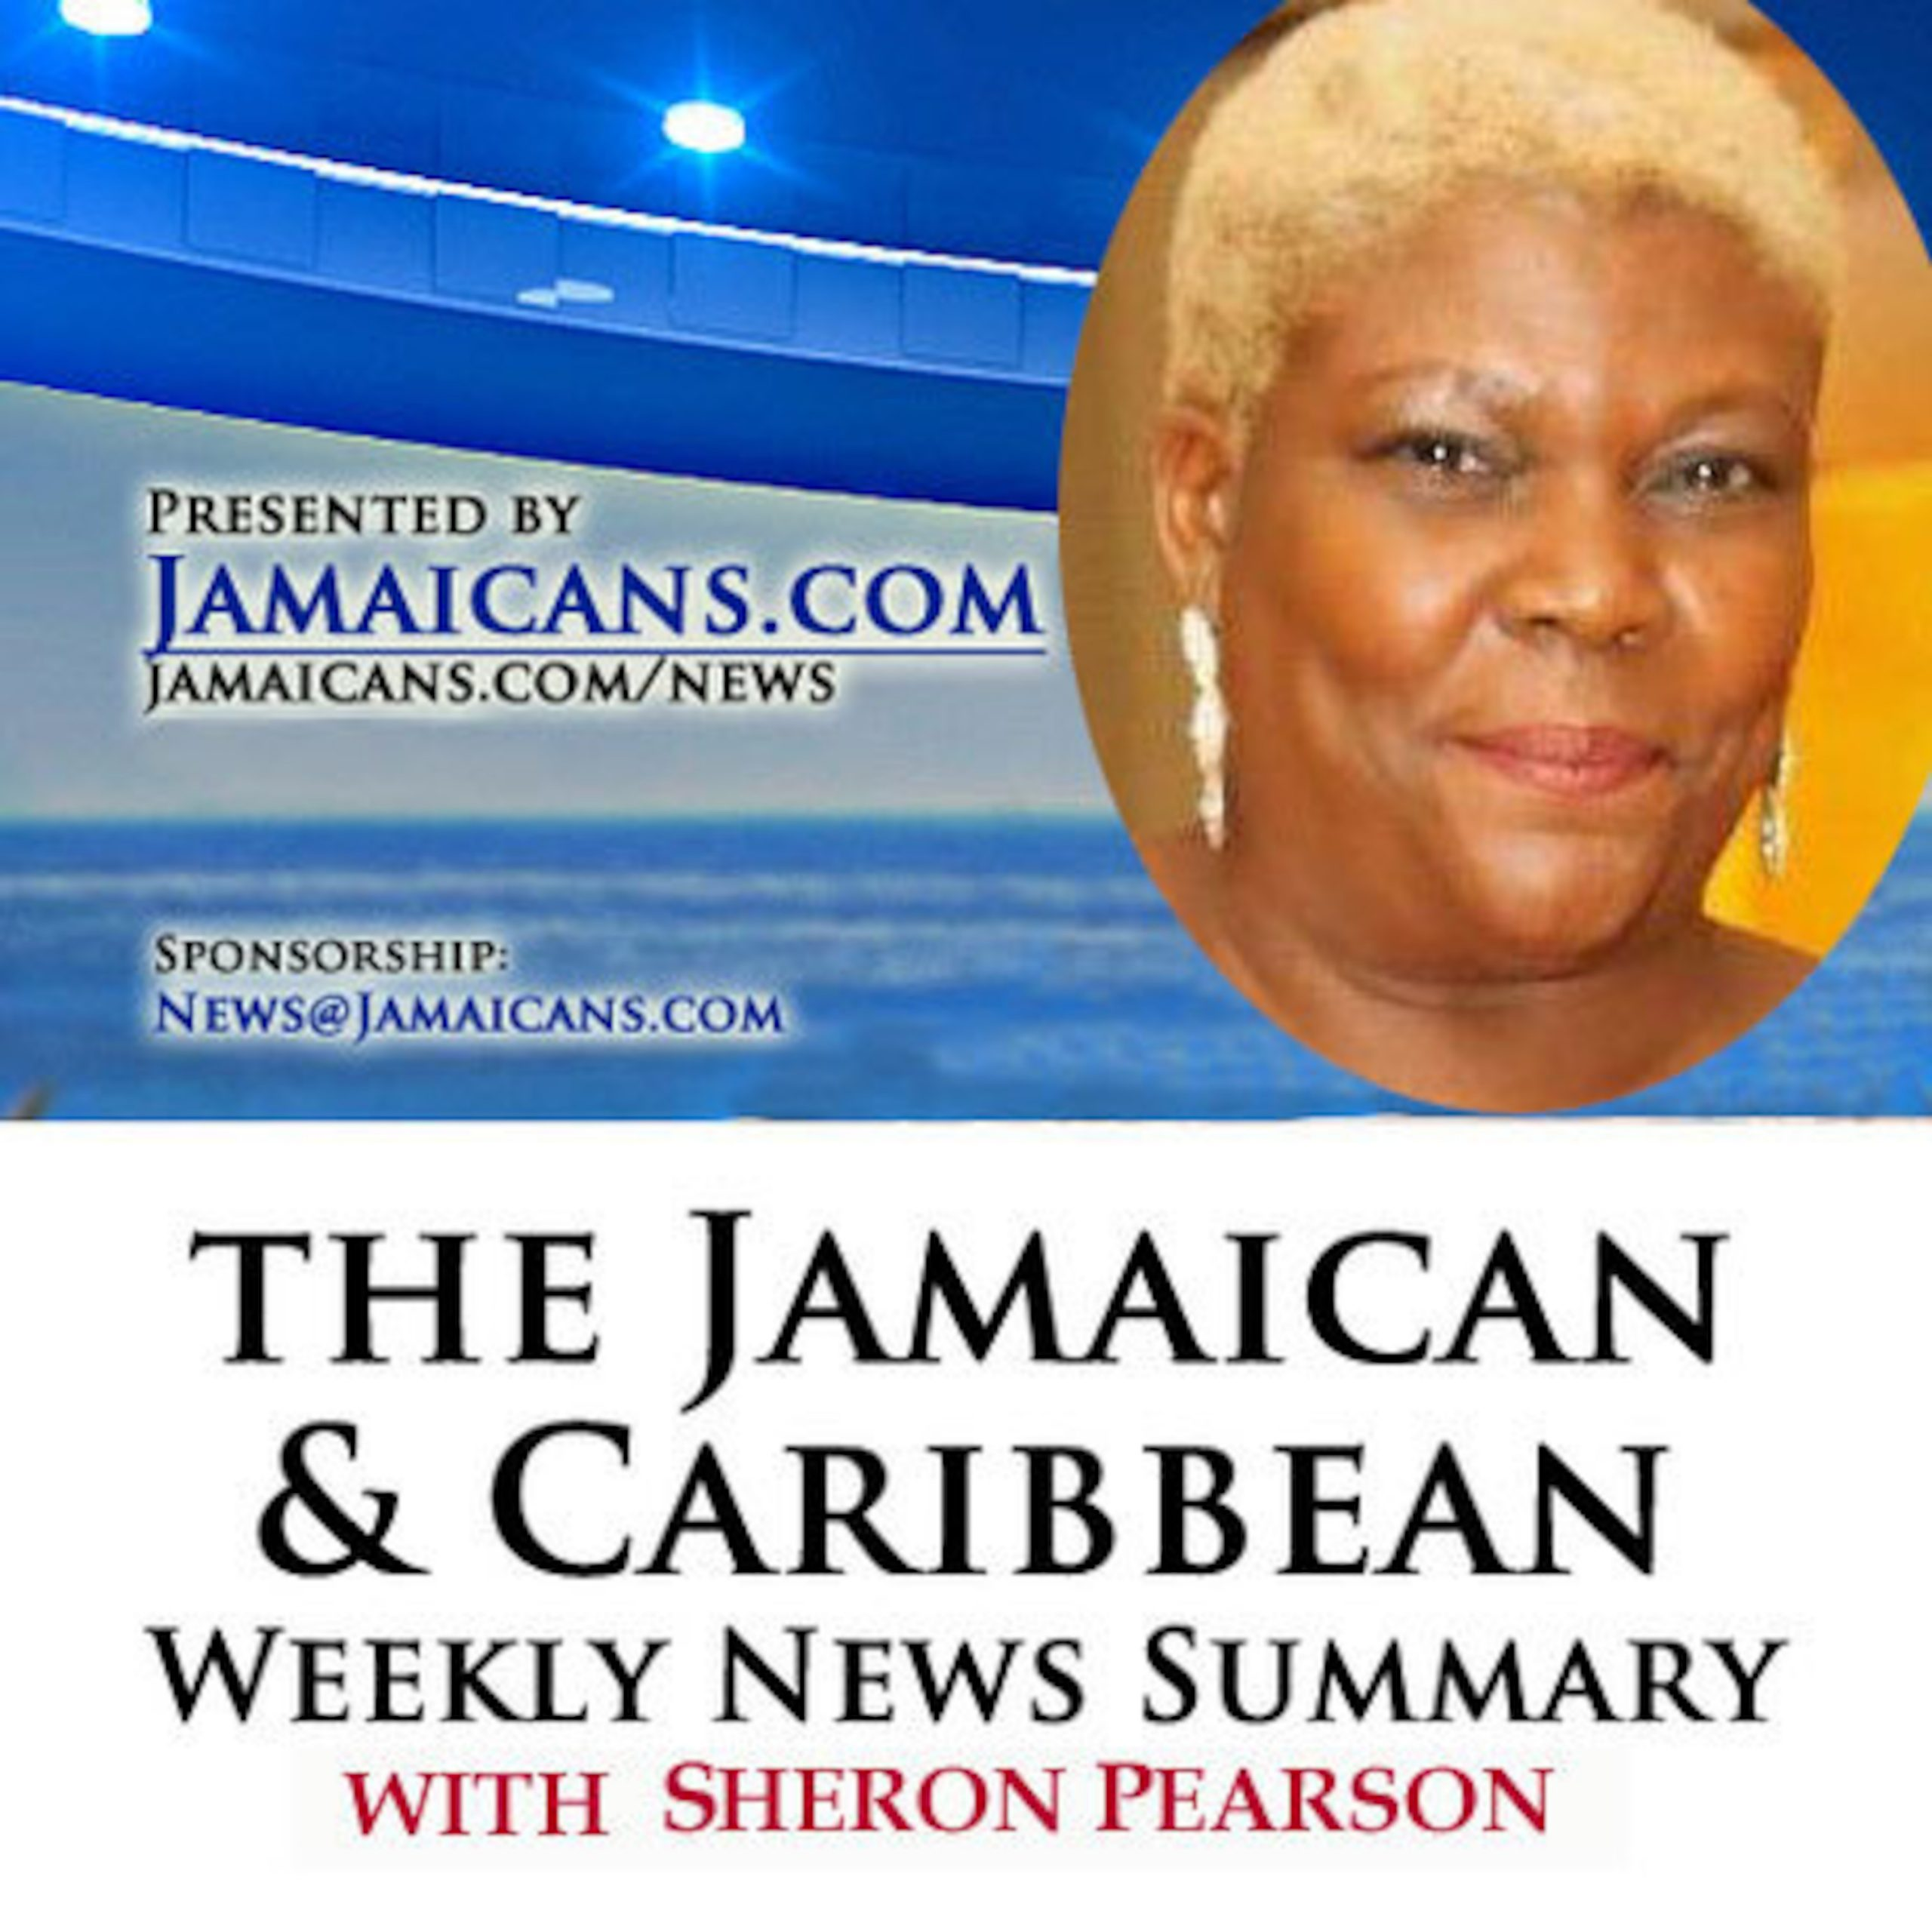 Listen to the Podcast of The Jamaica & Caribbean Weekly News Summary for the week ending July 24, 2020